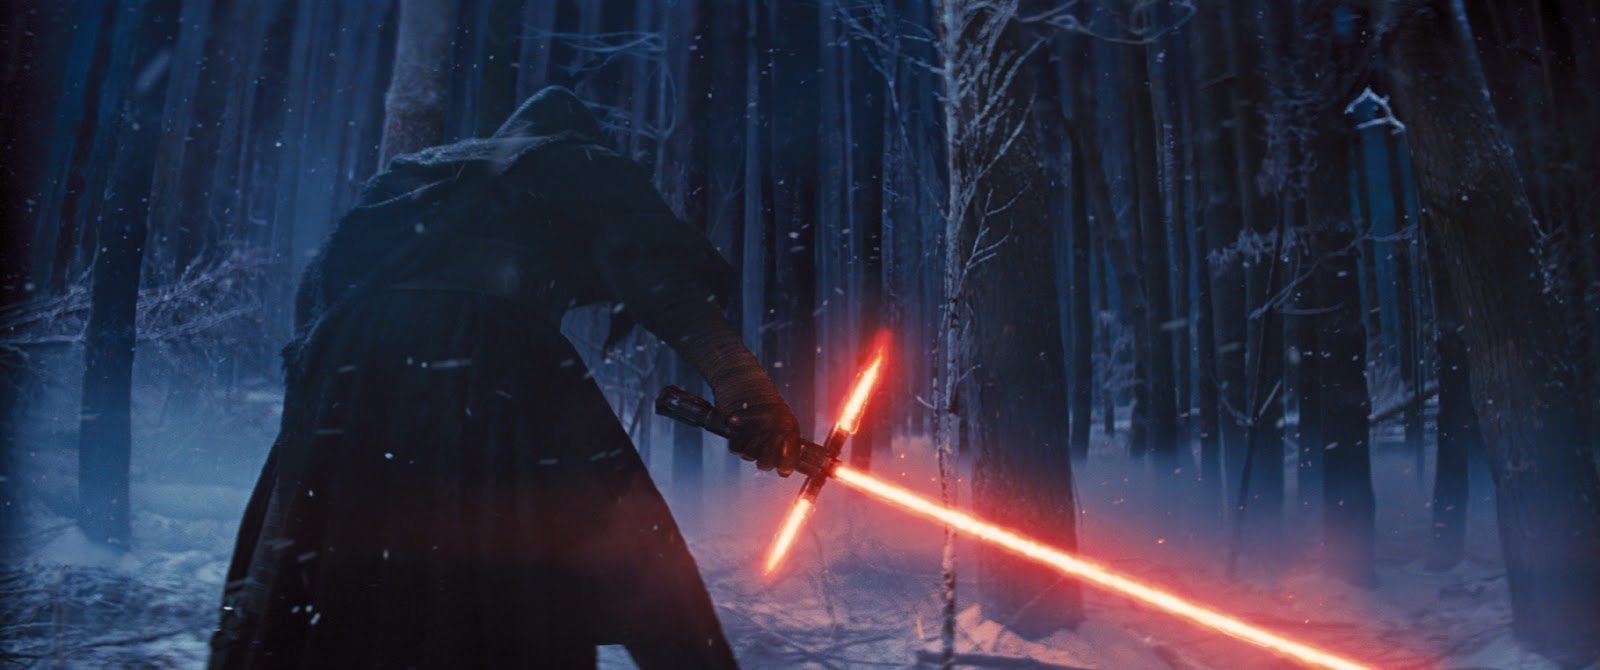 Star Wars VII The Force Awakens episode lightsaber 2015